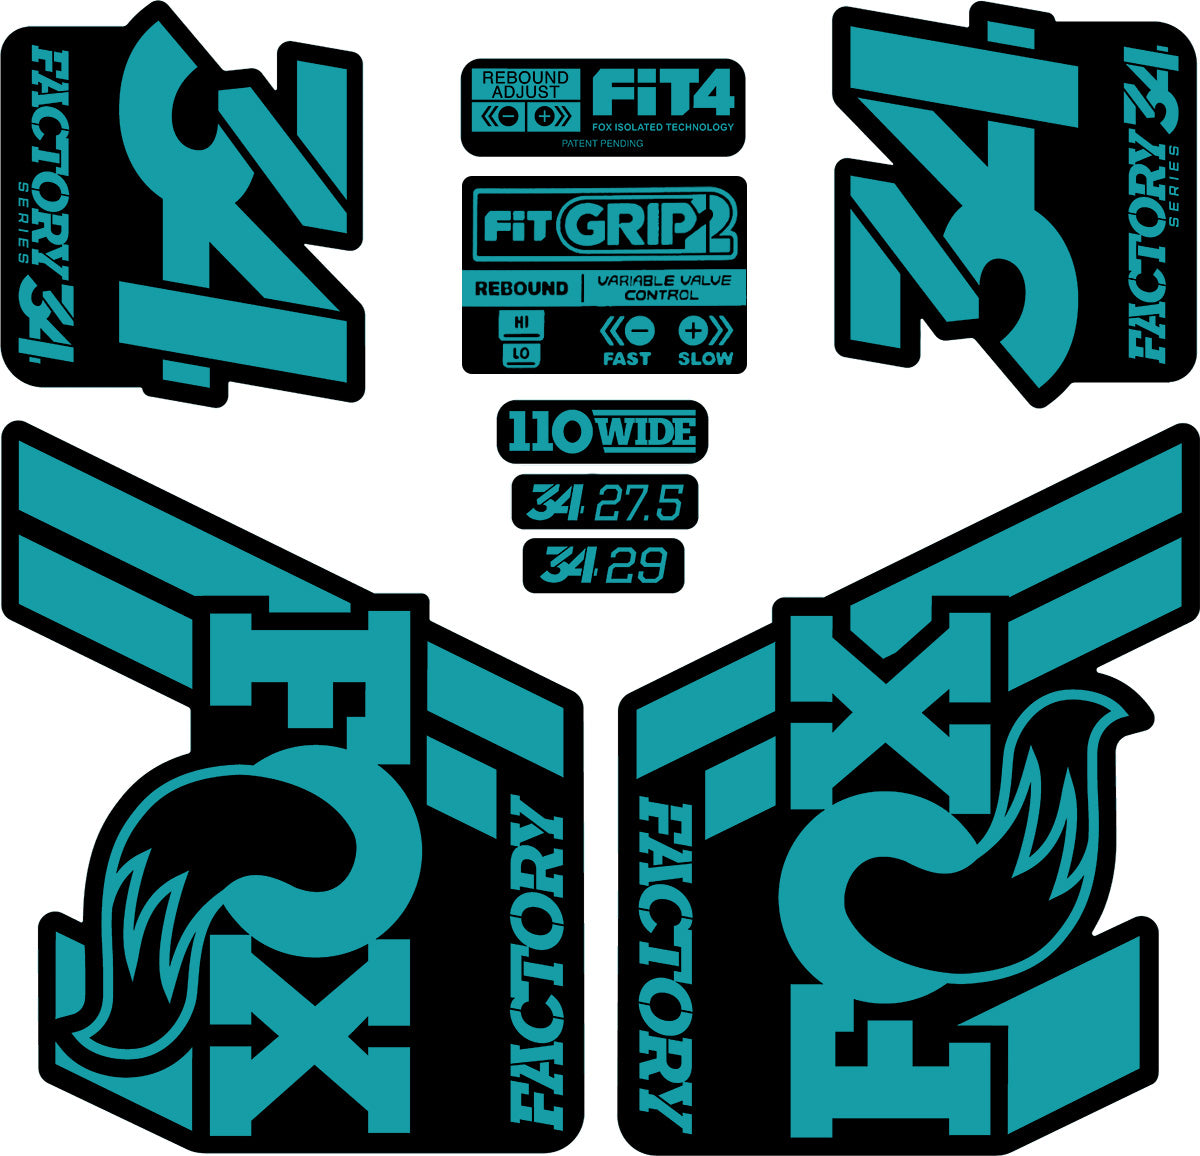 FOX 32 Float 2017 Forks Suspension Factory Decals Stickers Adhesive Oil Slick